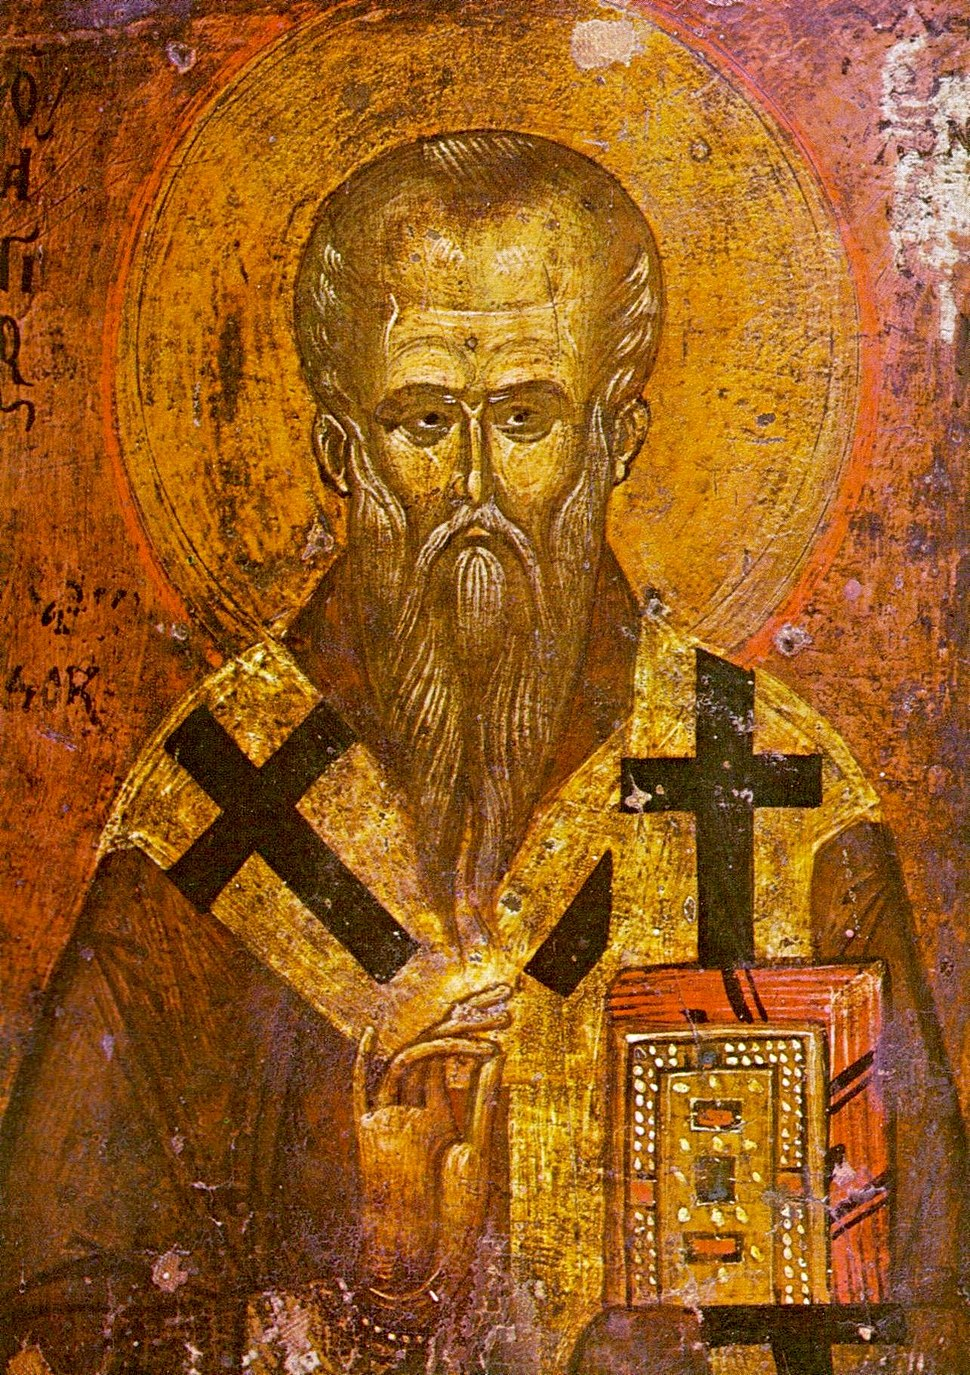 Saint Clement of Ohrid (icon, 13th-14th century)